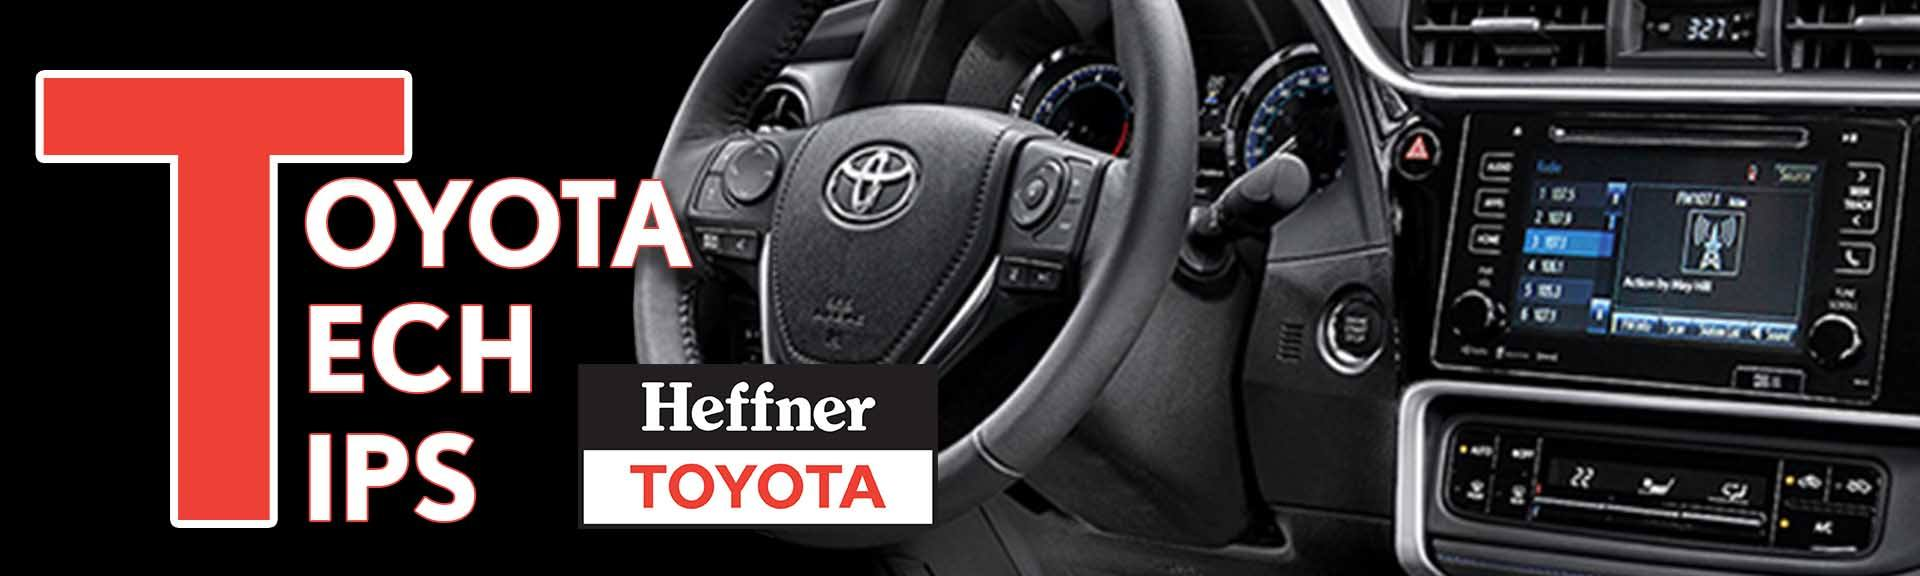 Toyota Tech Tips presented by Heffner Toyota